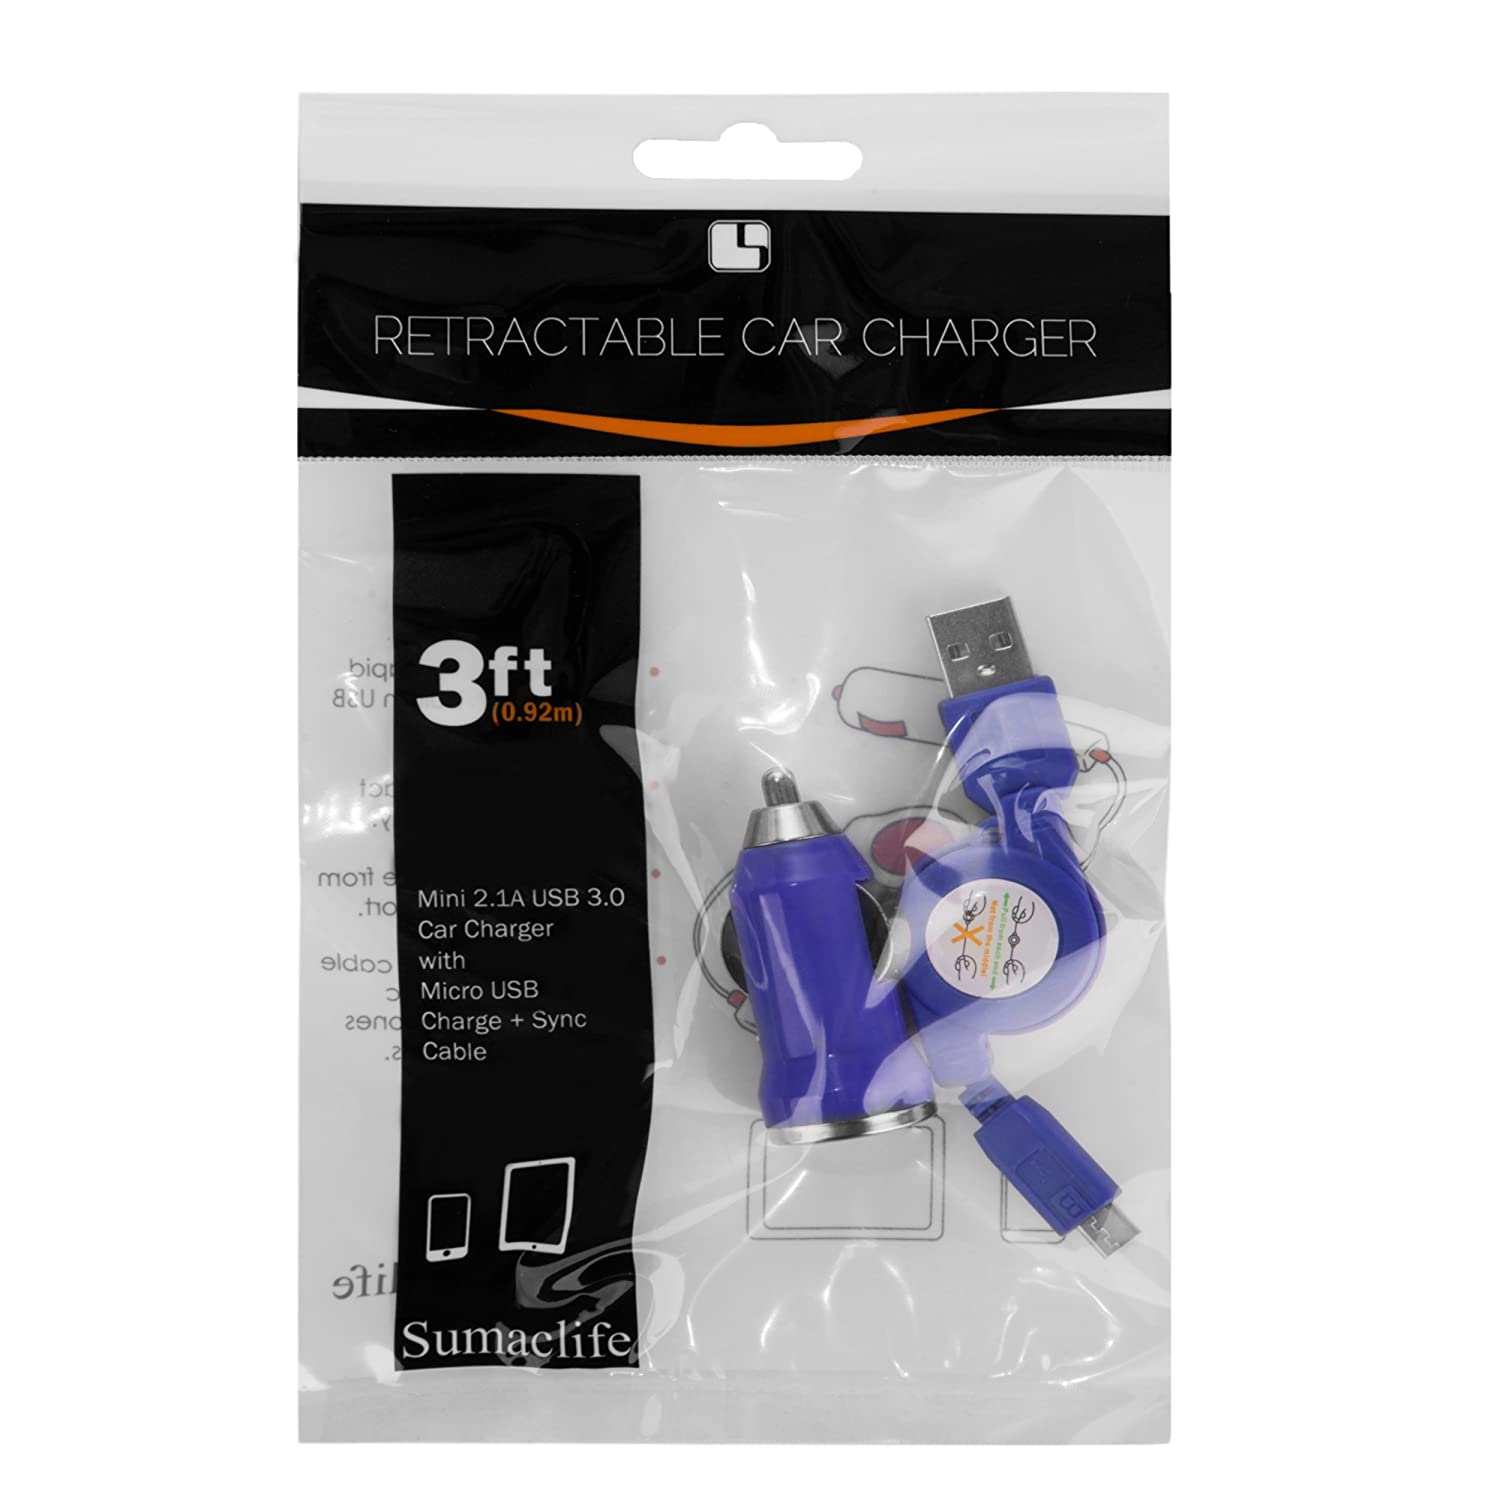 Navy Blue SumacLife 3 Retractable Micro USB Charge /& Sync Cable with 2.1A Mini USB 3.0 Car Charger